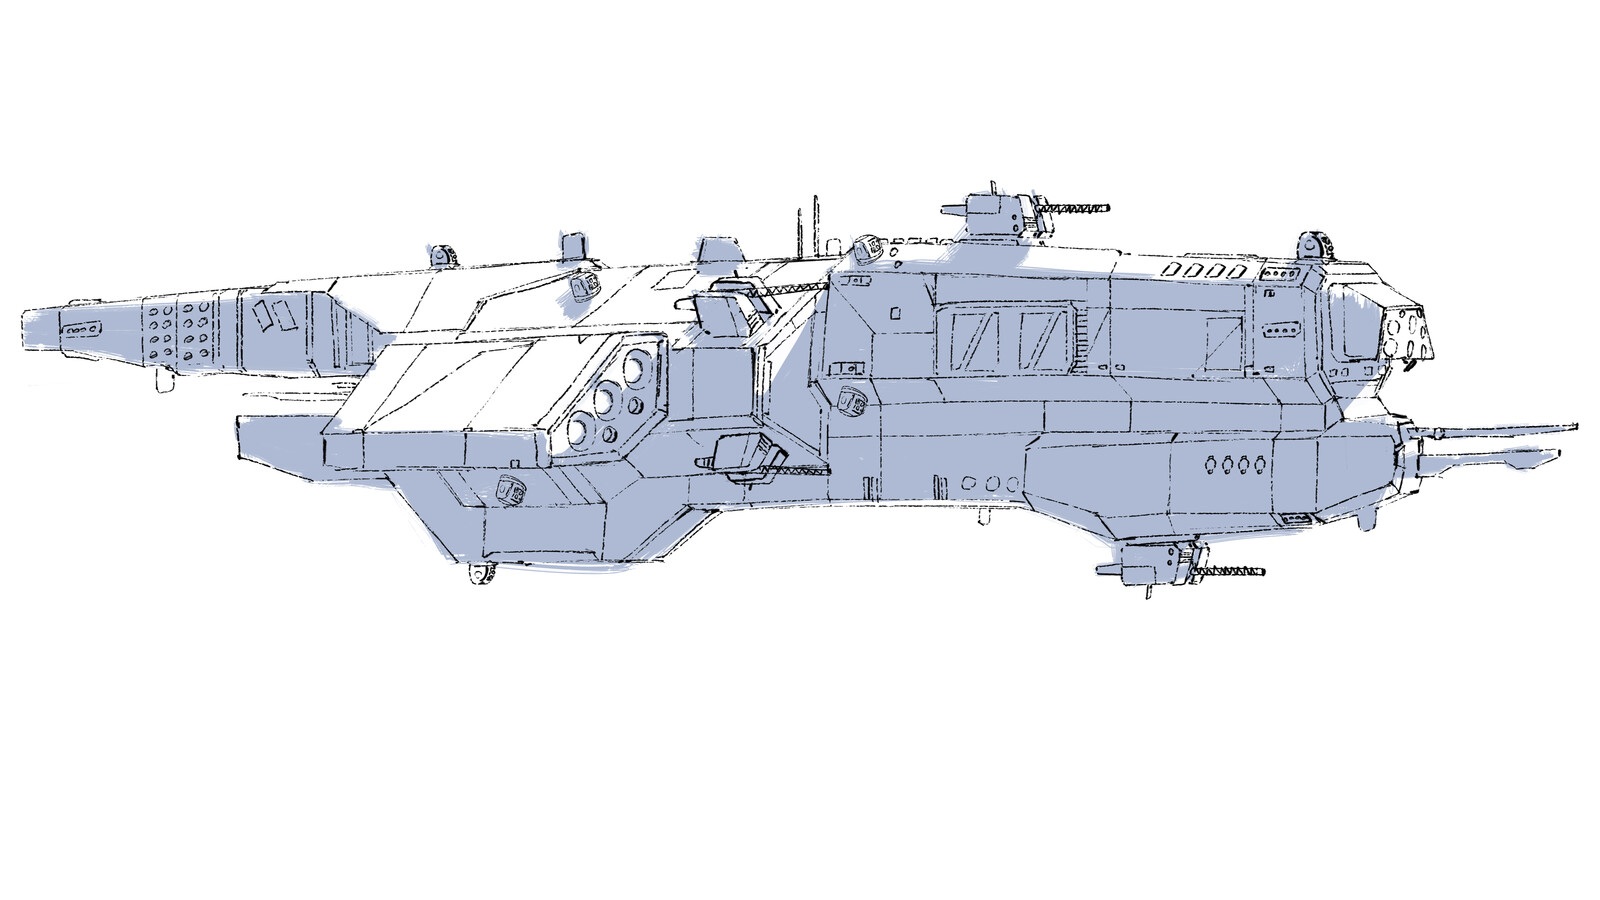 variant 1 of the ship